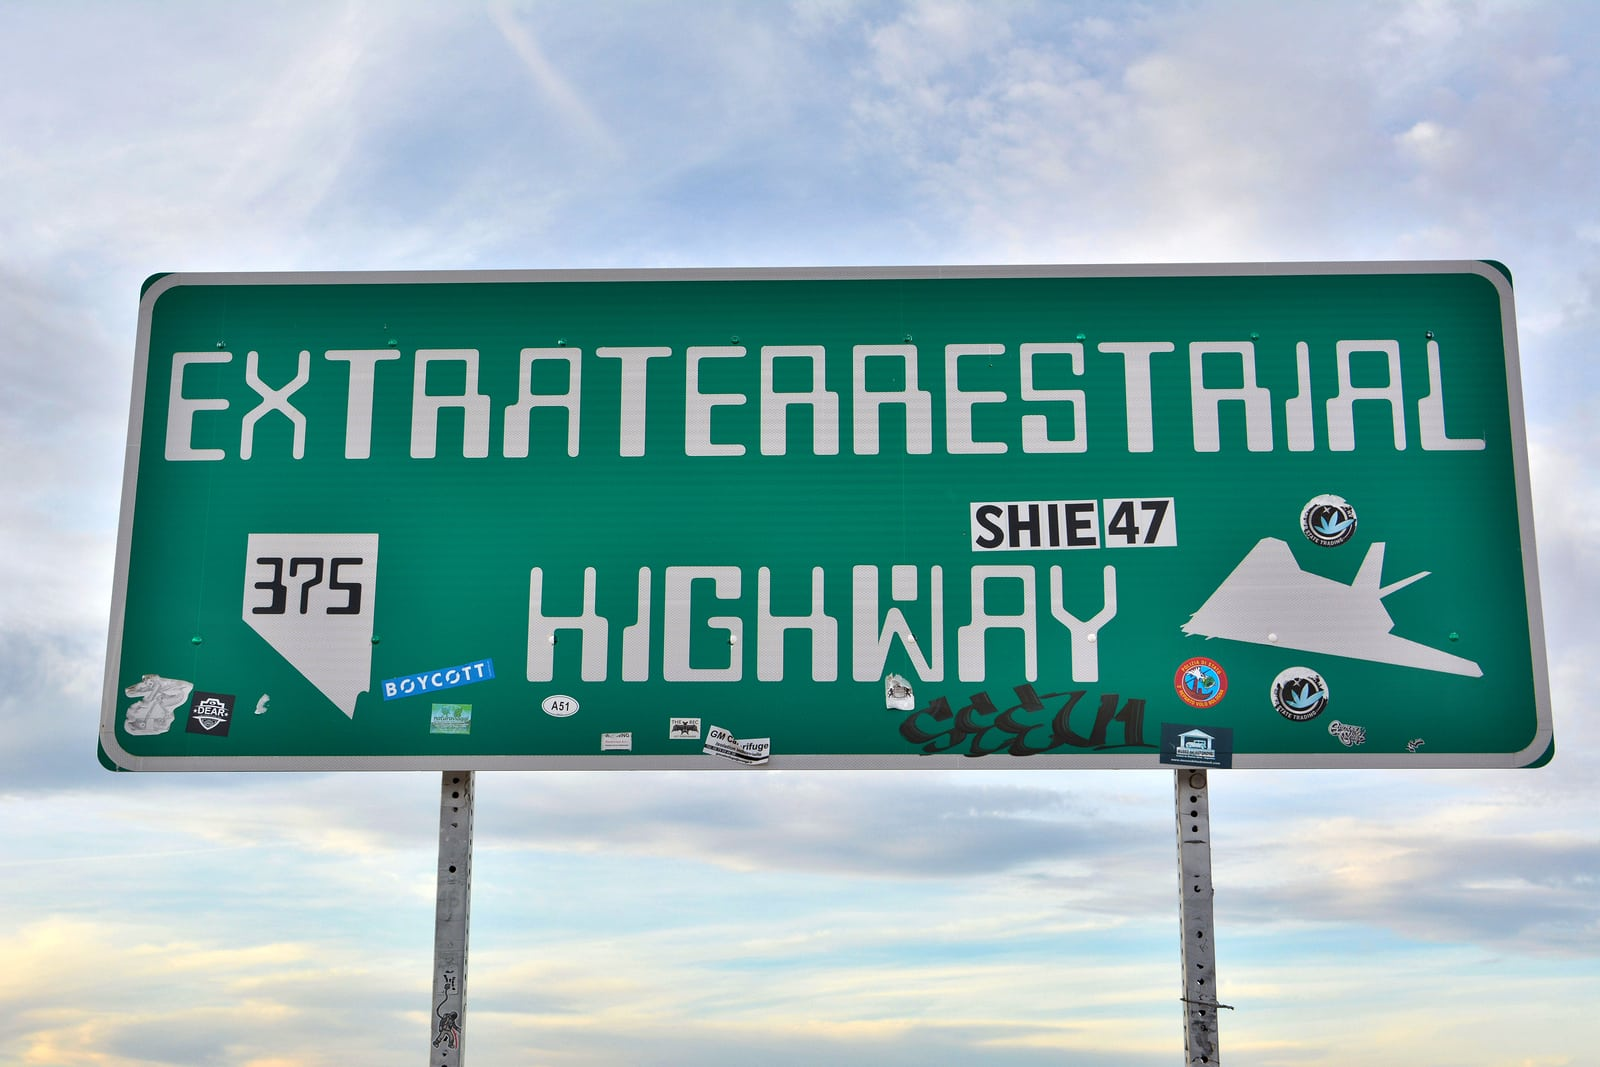 Rachel, Nevada, United States of America - November 21, 2017. Extraterrestrial Highway sign on SR-375 highway in Rachel, NV.